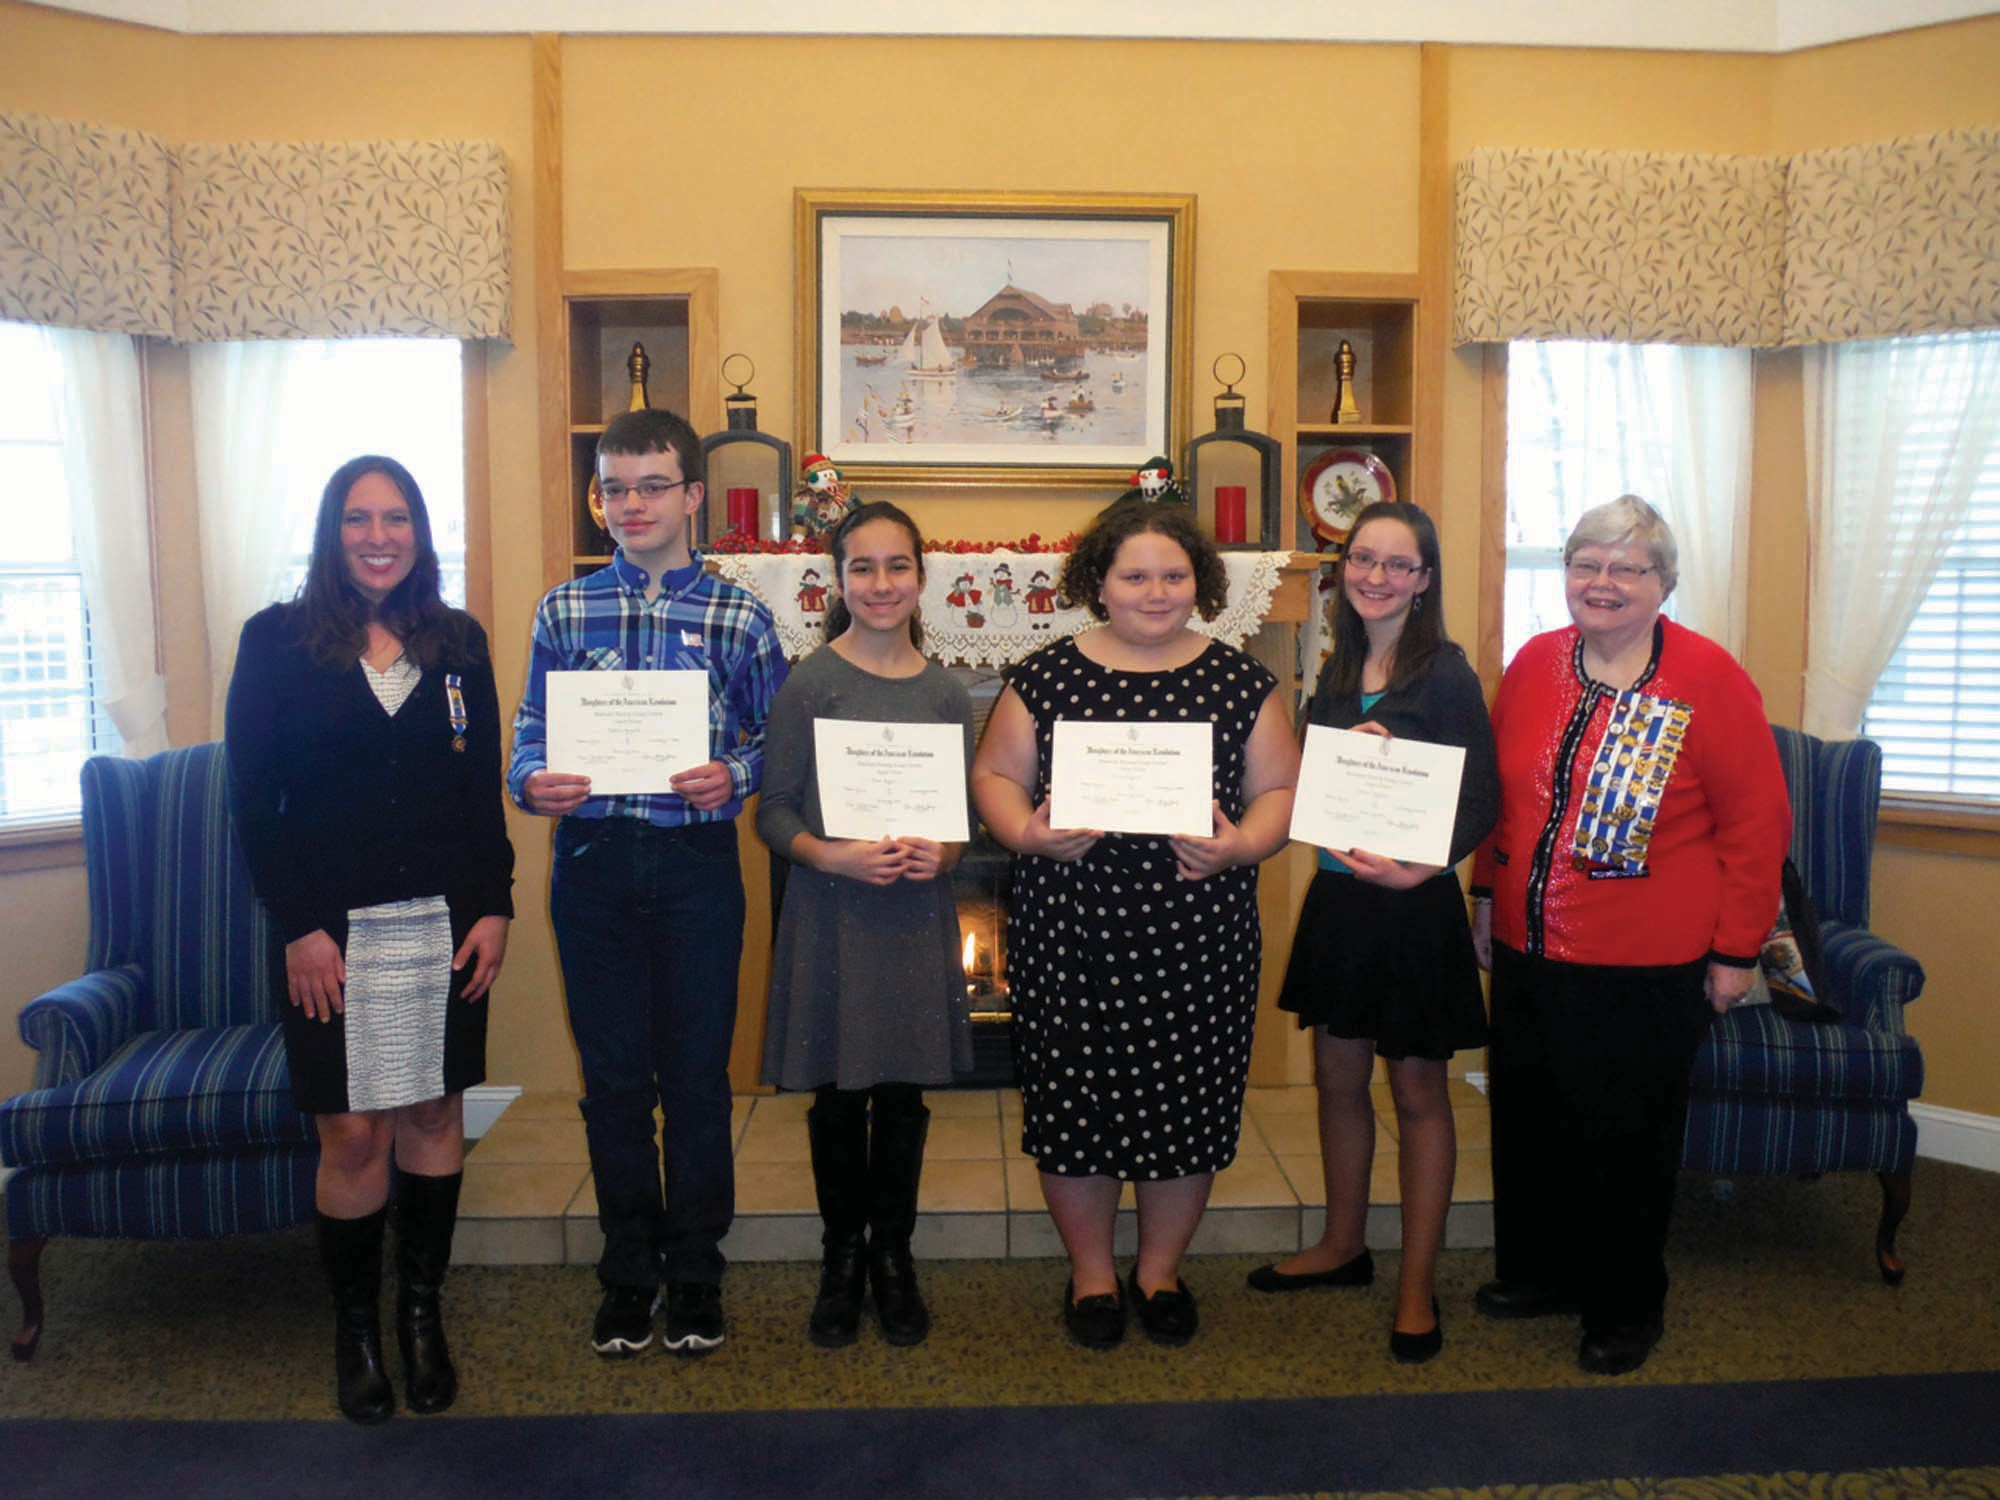 Pictured from left are Rebecca Emery Chapter Historian of the Daughters of the American Revolution Leigh Rush Olson; Jeffrey Fosgatem, Sarah Bouley and Emily Ireland, all of Massabesic Middle School; Sophia Tanguay of Waterboro Elementary School; and Chapter Regent Helen Newton.